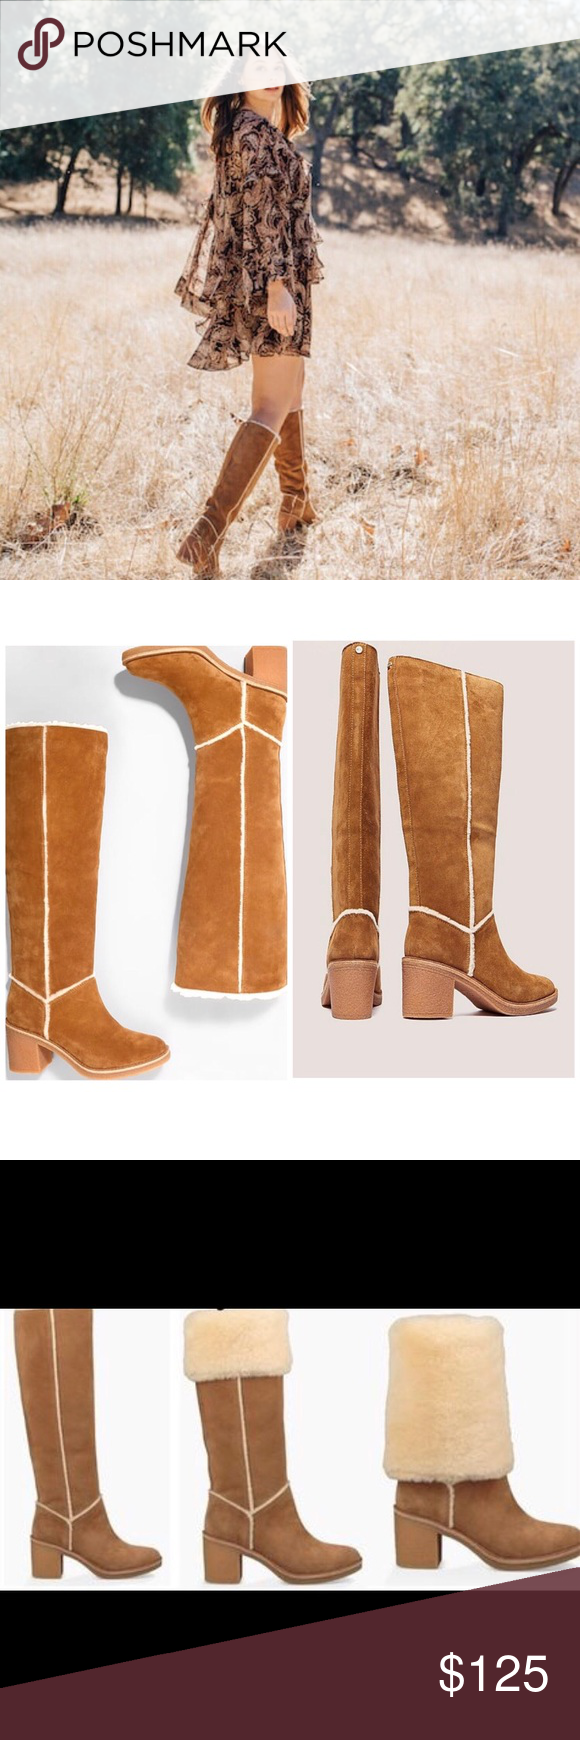 23aac4f9d01 UGG 'Kasen' Tall Boot in Chestnut ✨NEW A crepe-like rubber outsole ...